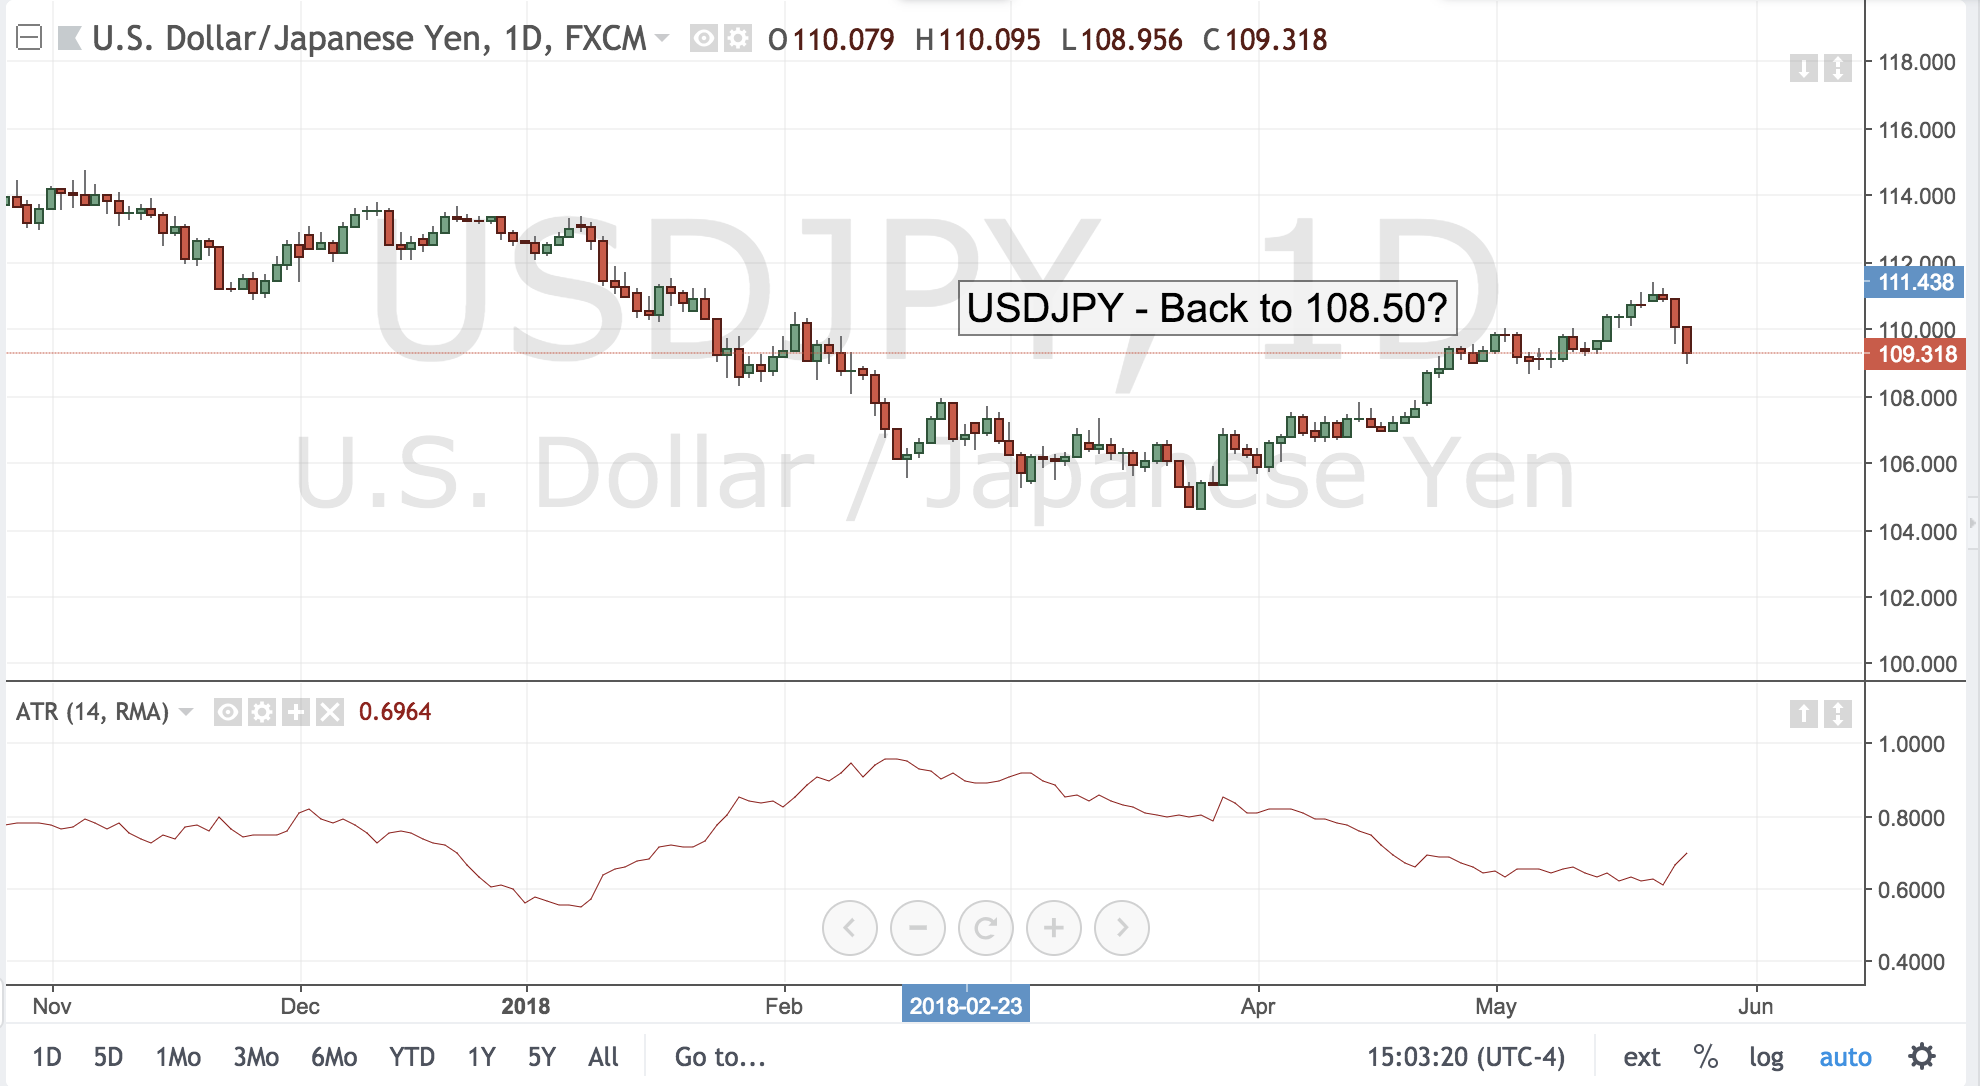 USDJPY- Back to 108.50?